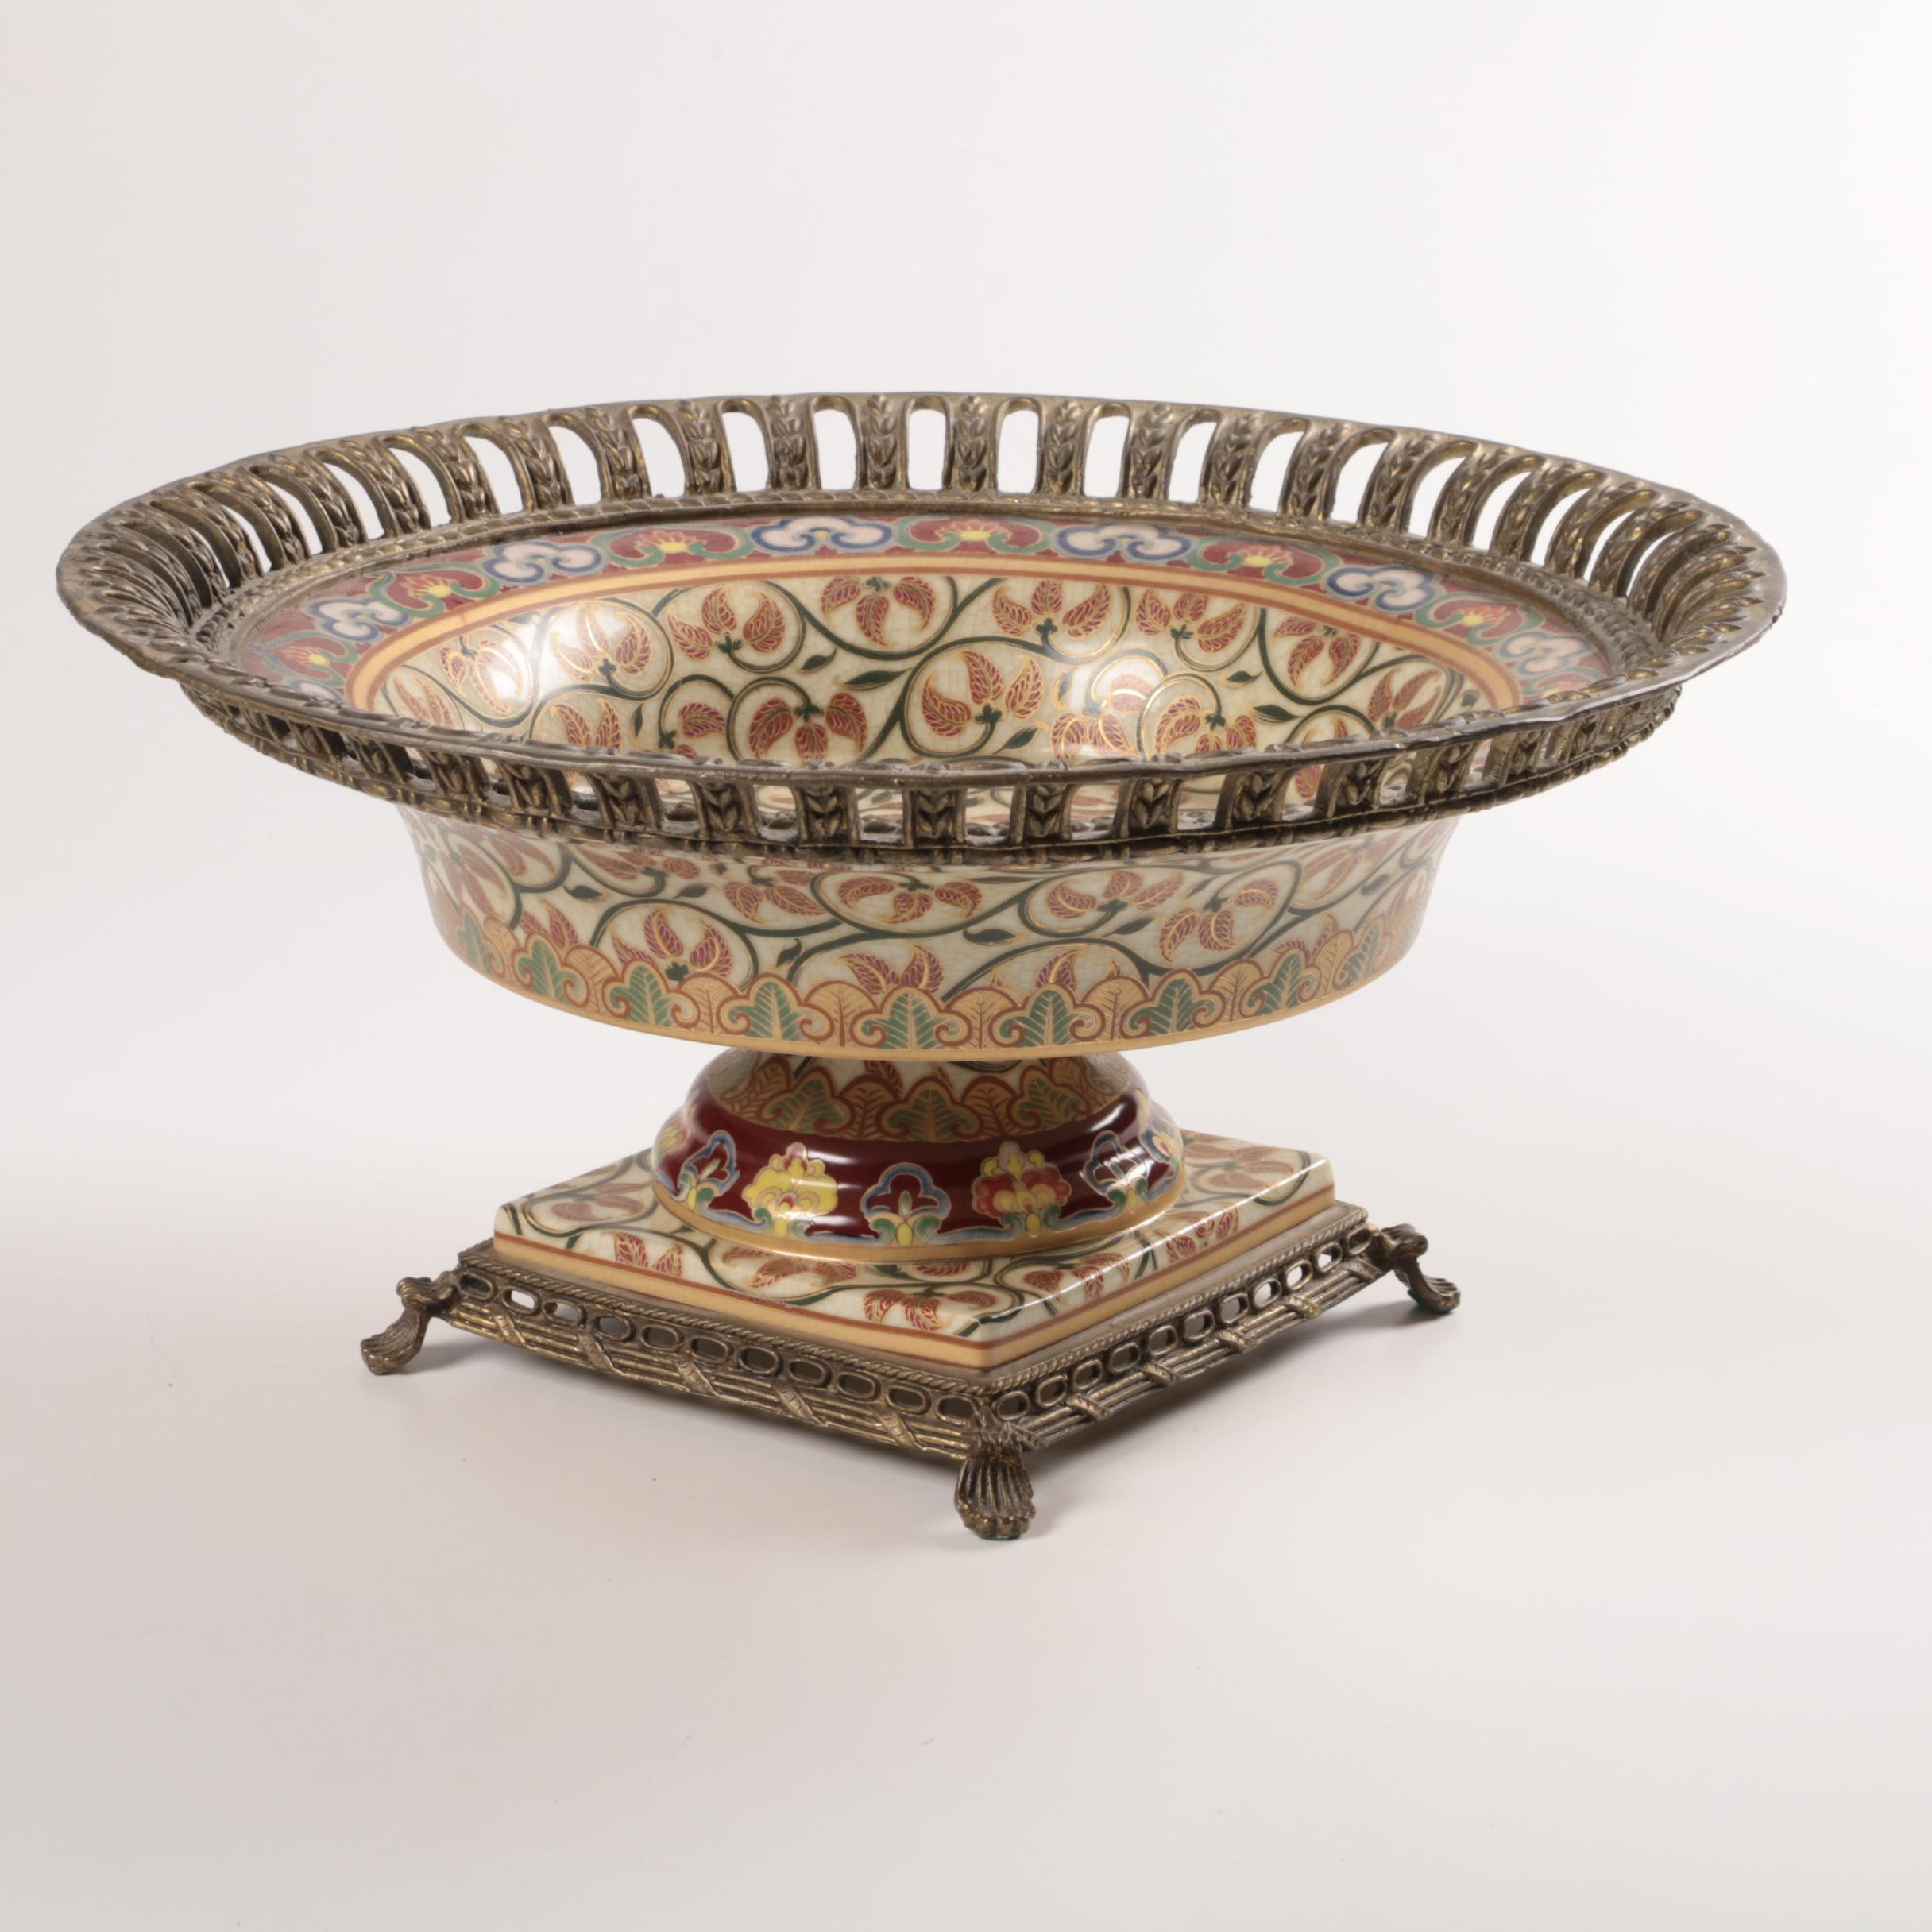 Chinese Decorative Ceramic and Brass Tone Pedestal Bowl